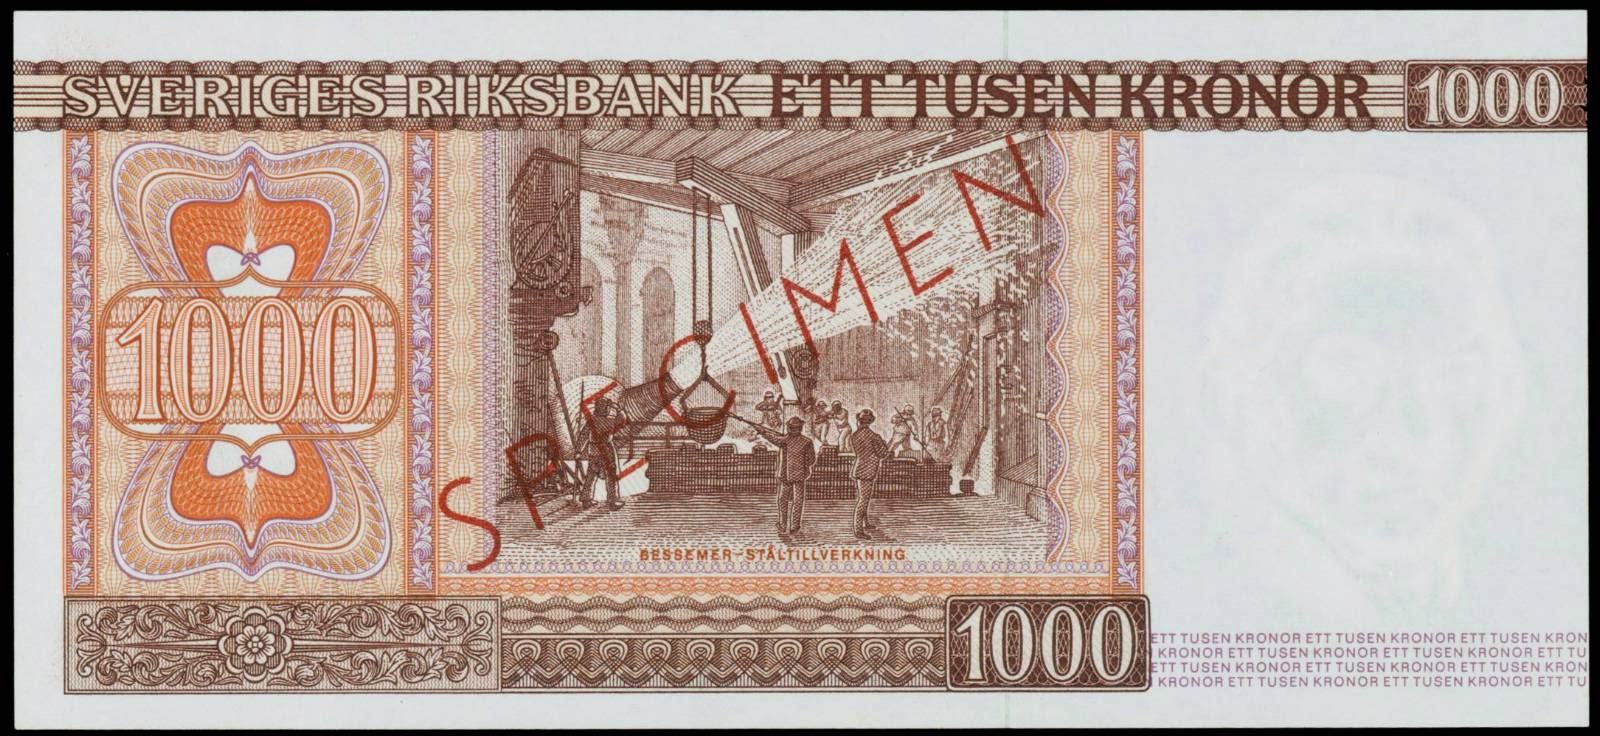 Sweden Currency 1000 kronor banknote